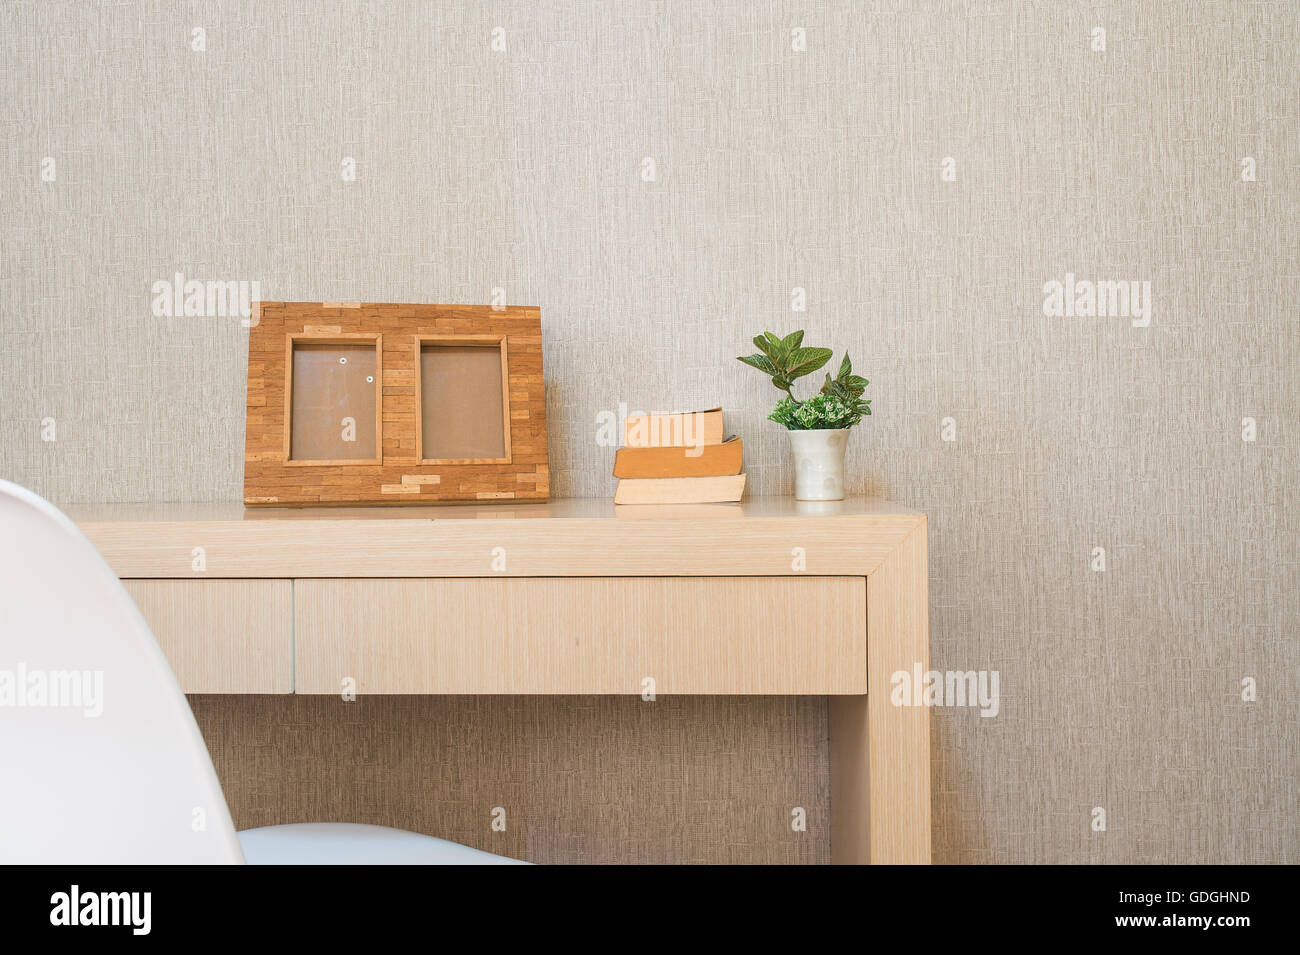 Home interior decor, bouquet of lilacs in a vase,picture frame and books on rustic wooden table, on wallpaper background. - Stock Image